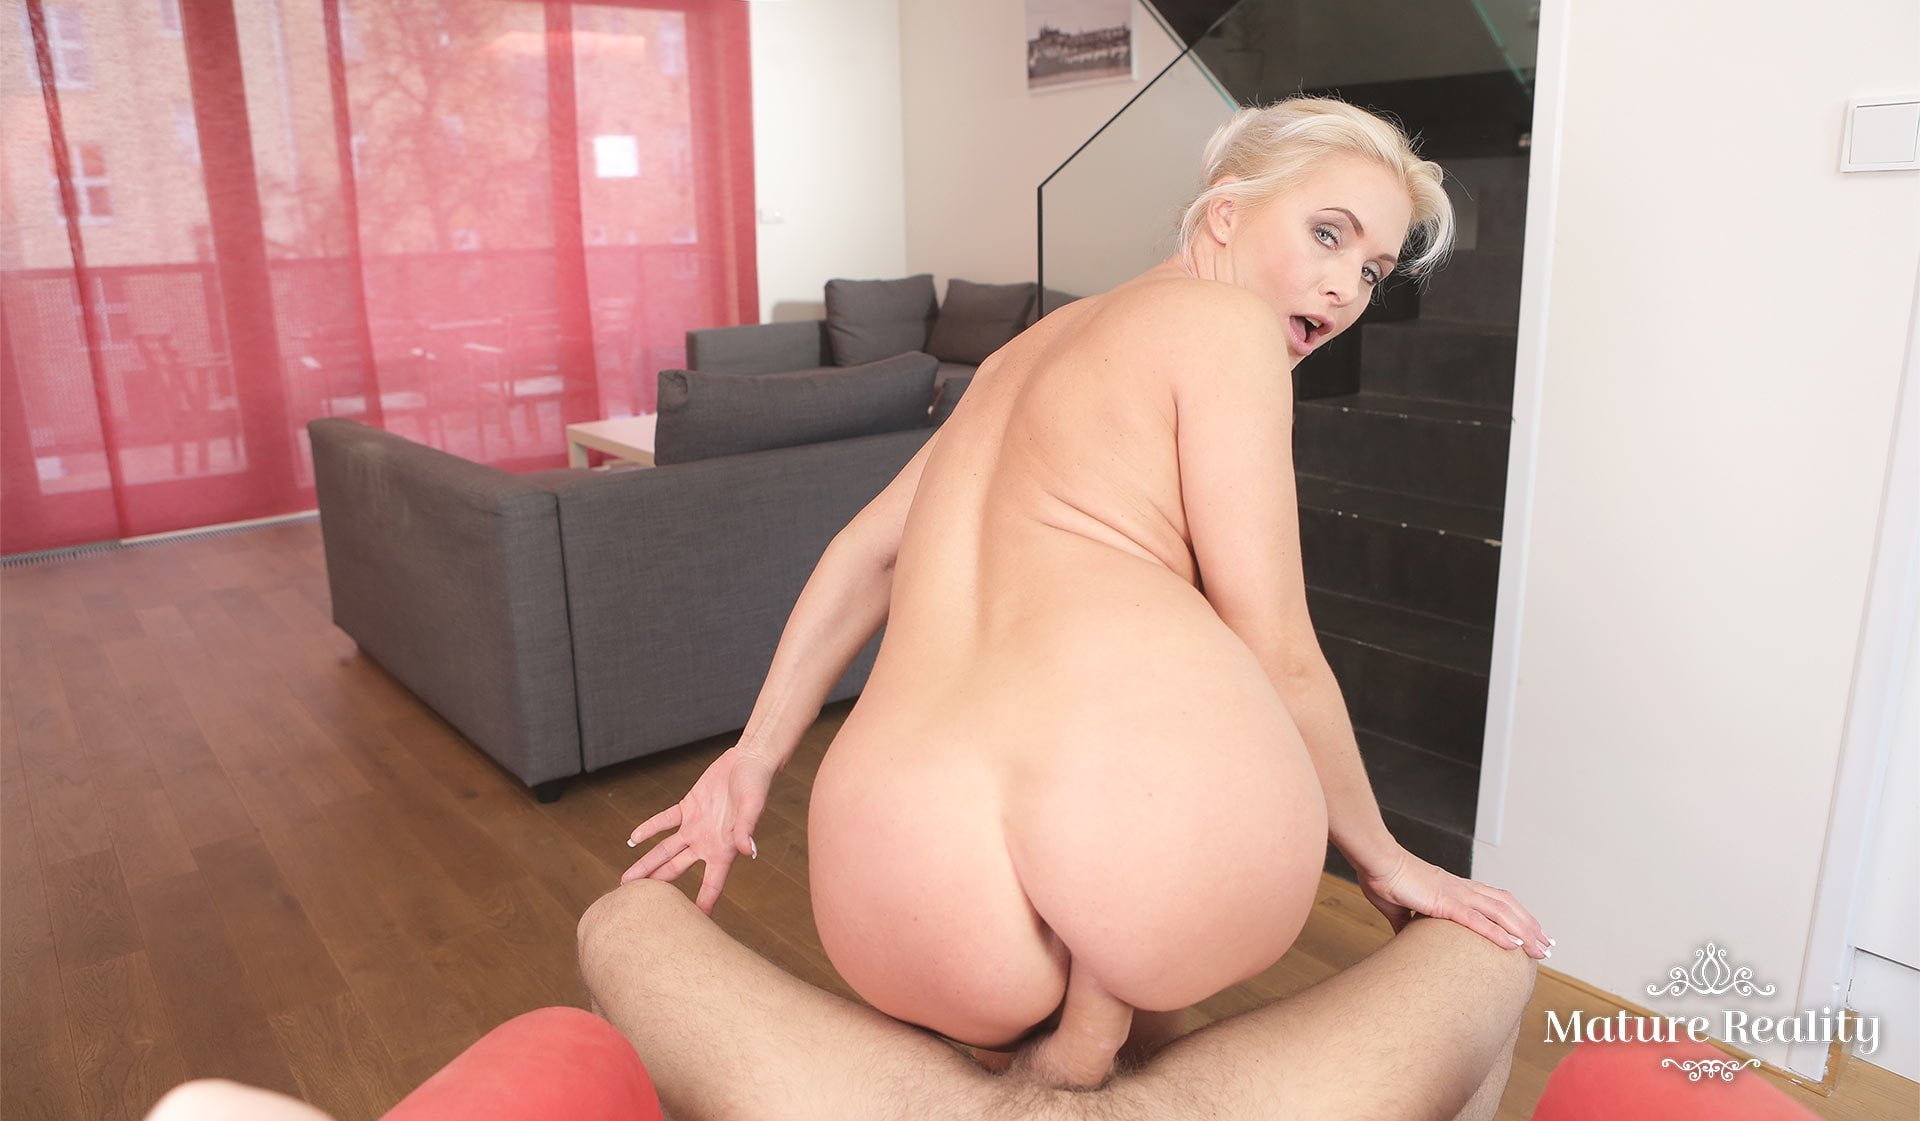 Erica campbell blowjob